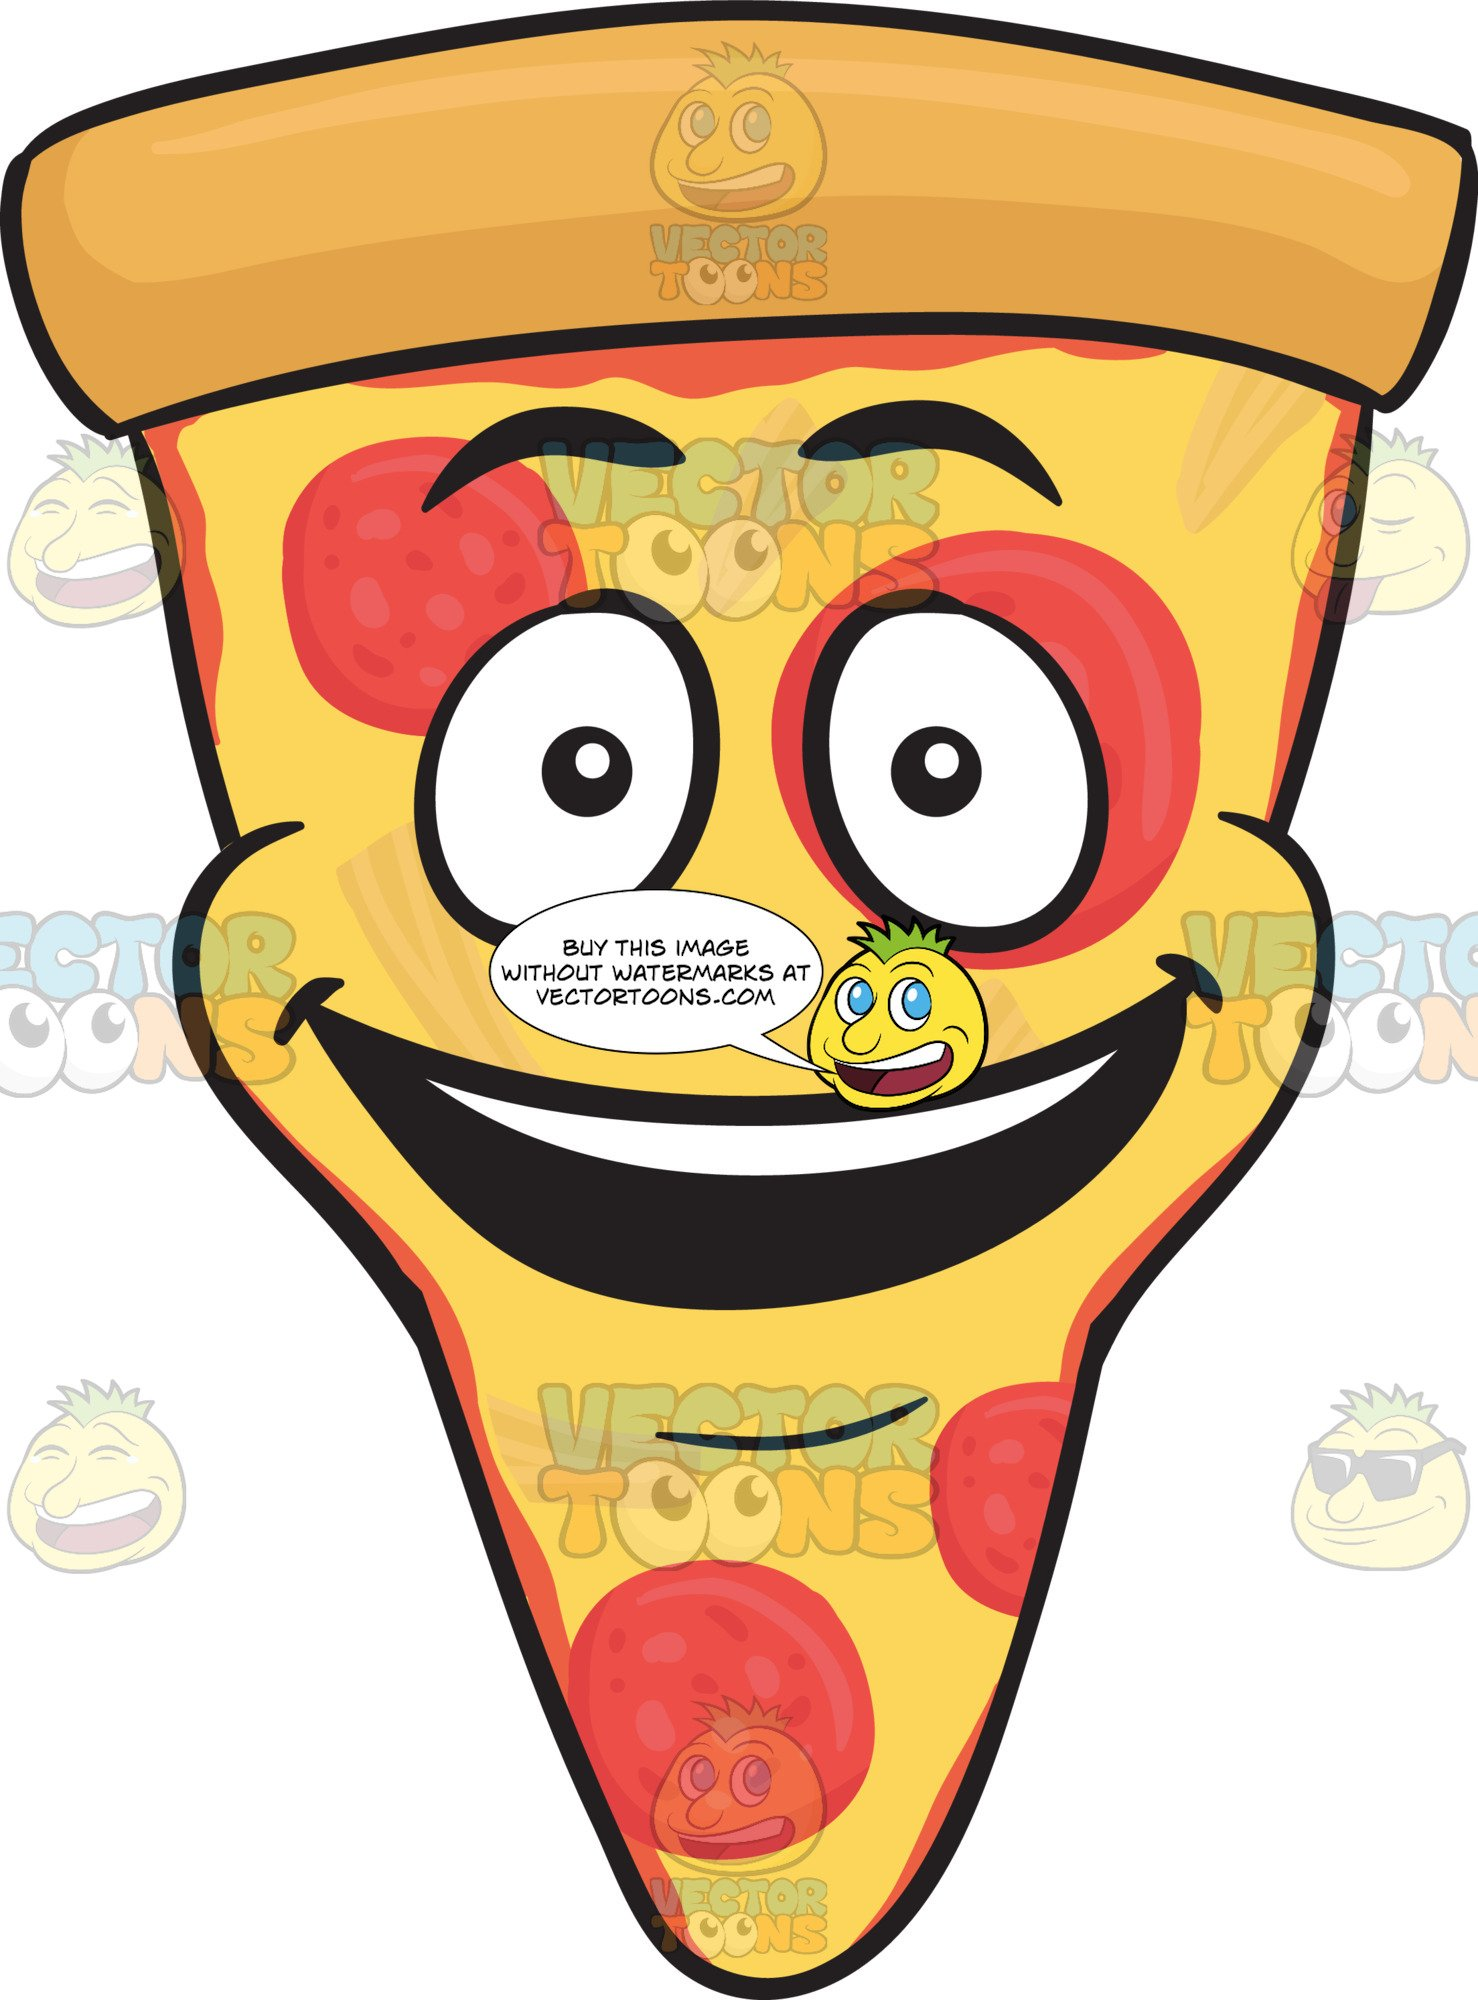 Pizza emoji clipart svg black and white download Slice Of Pepperoni Pizza With A Bright Look On Face Emoji svg black and white download